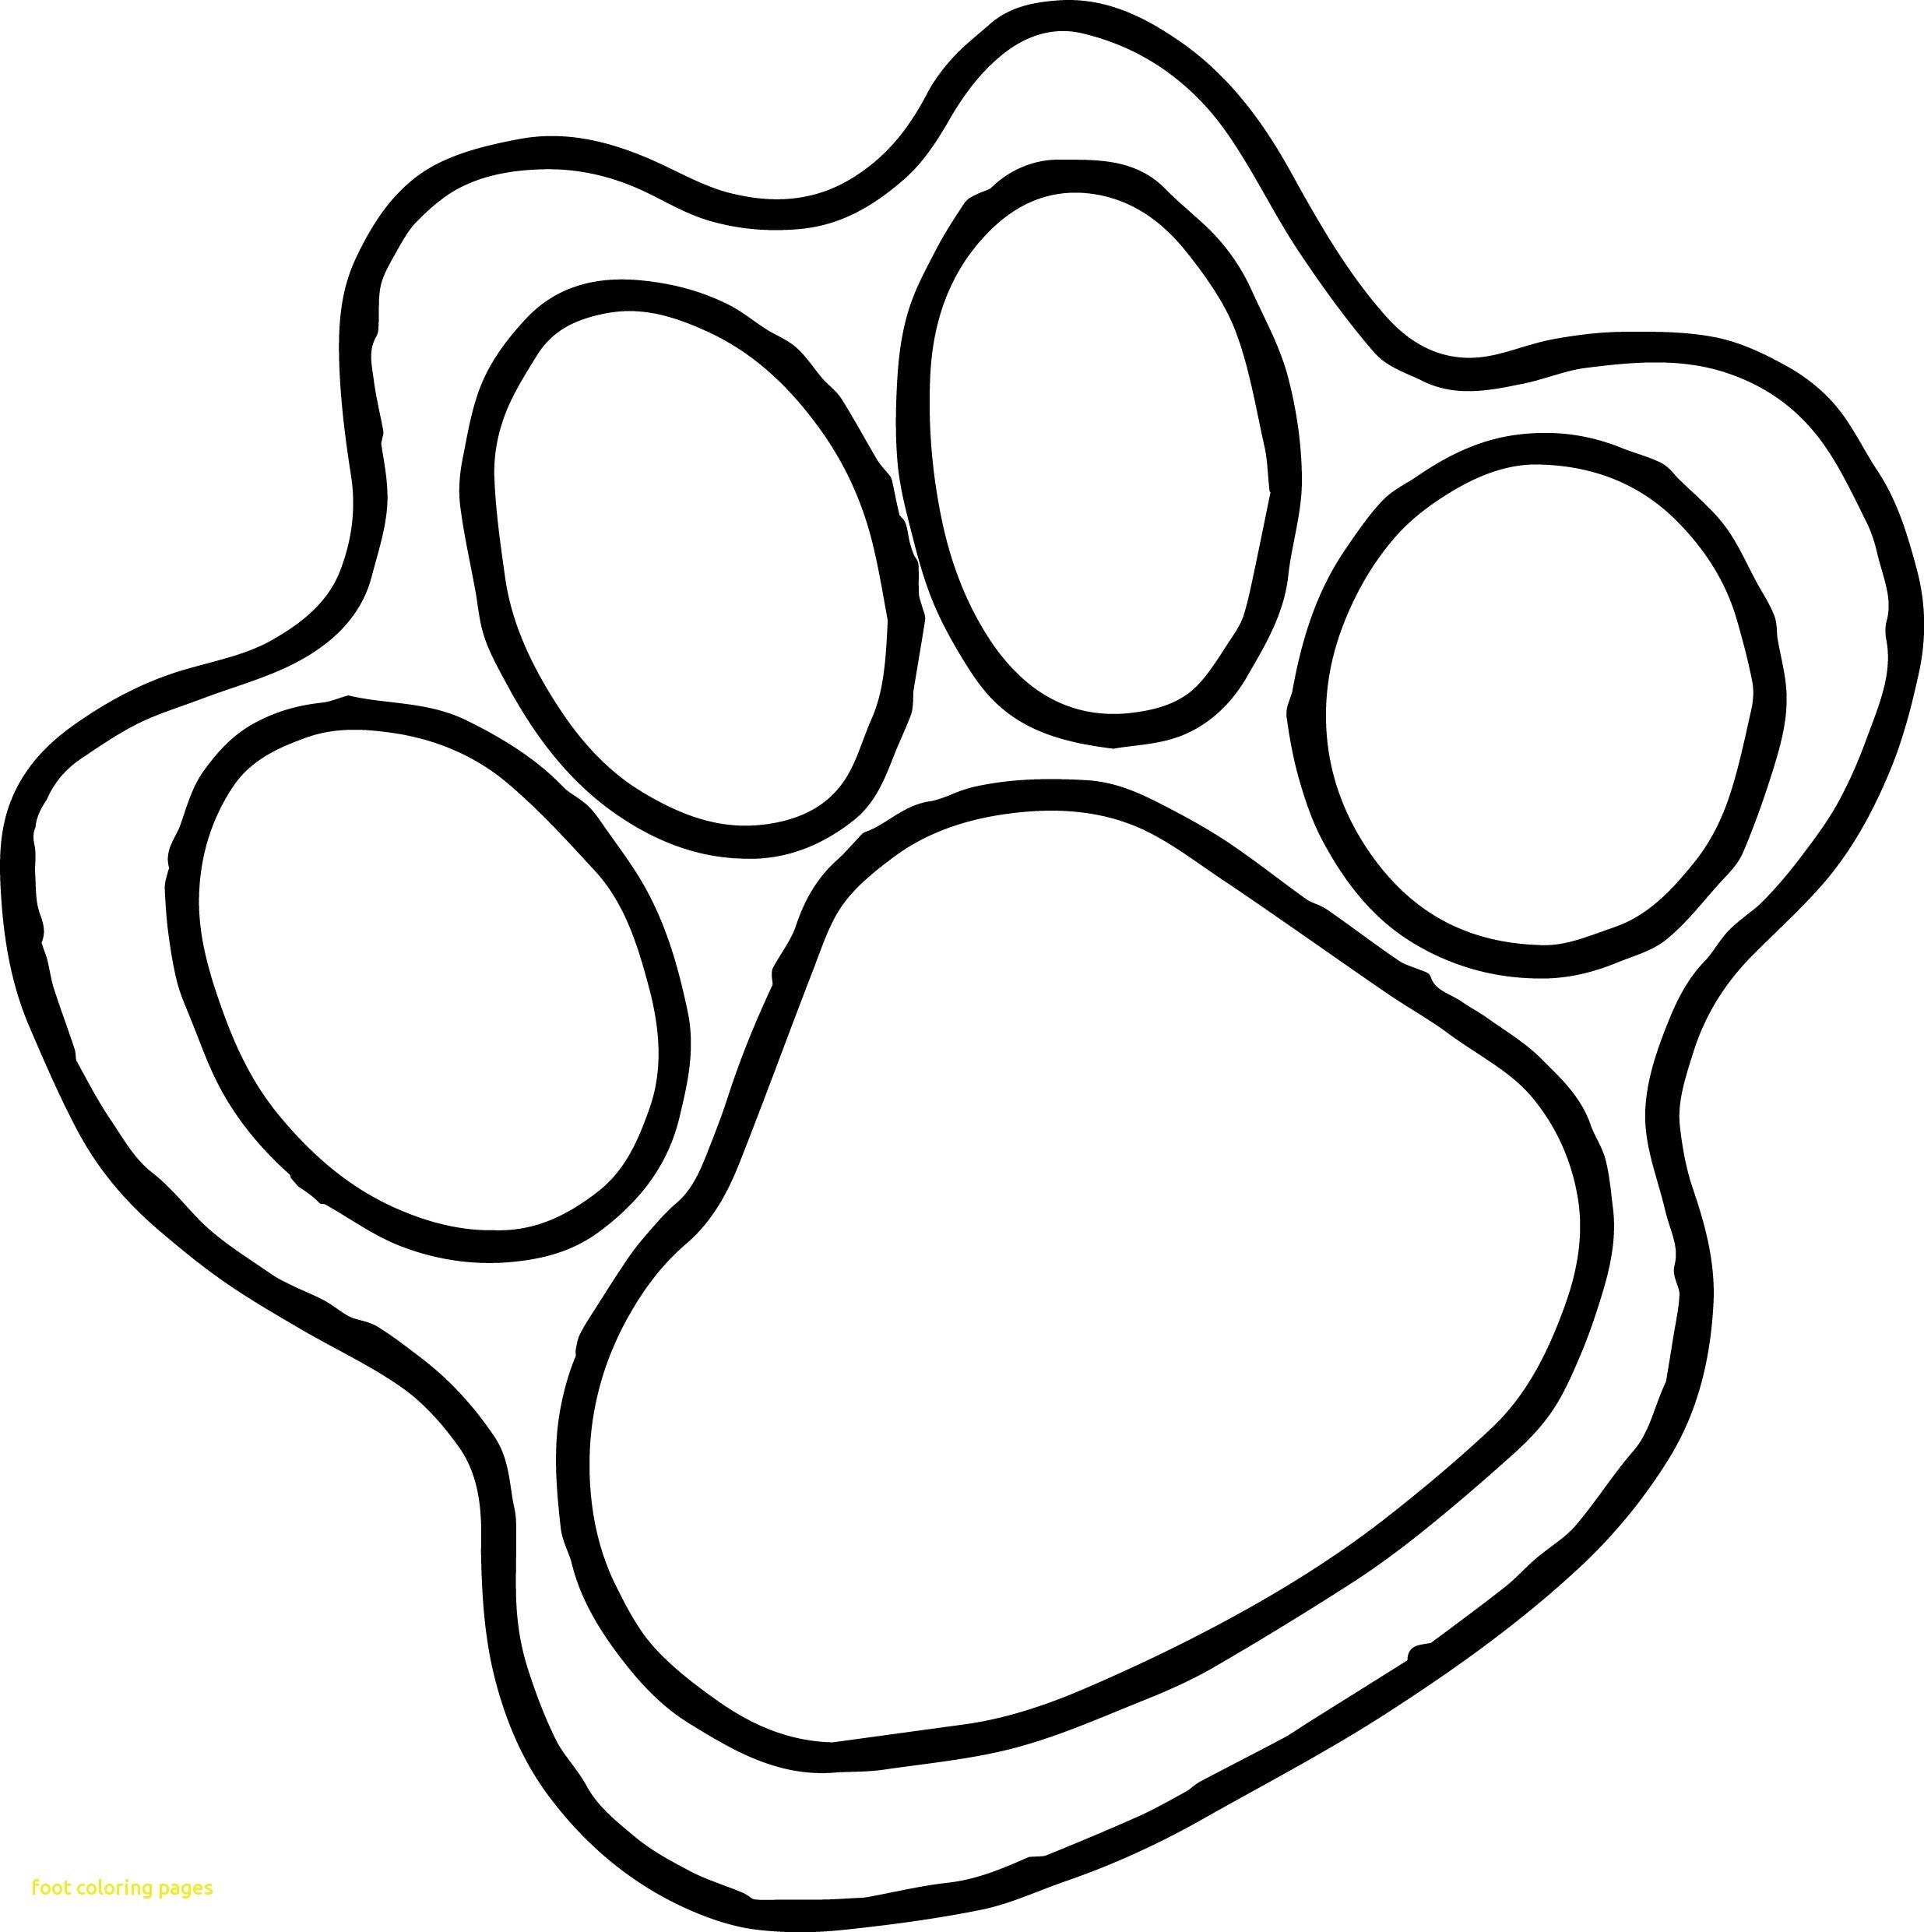 Paw Print Drawing Free Download Best Paw Print Drawing On